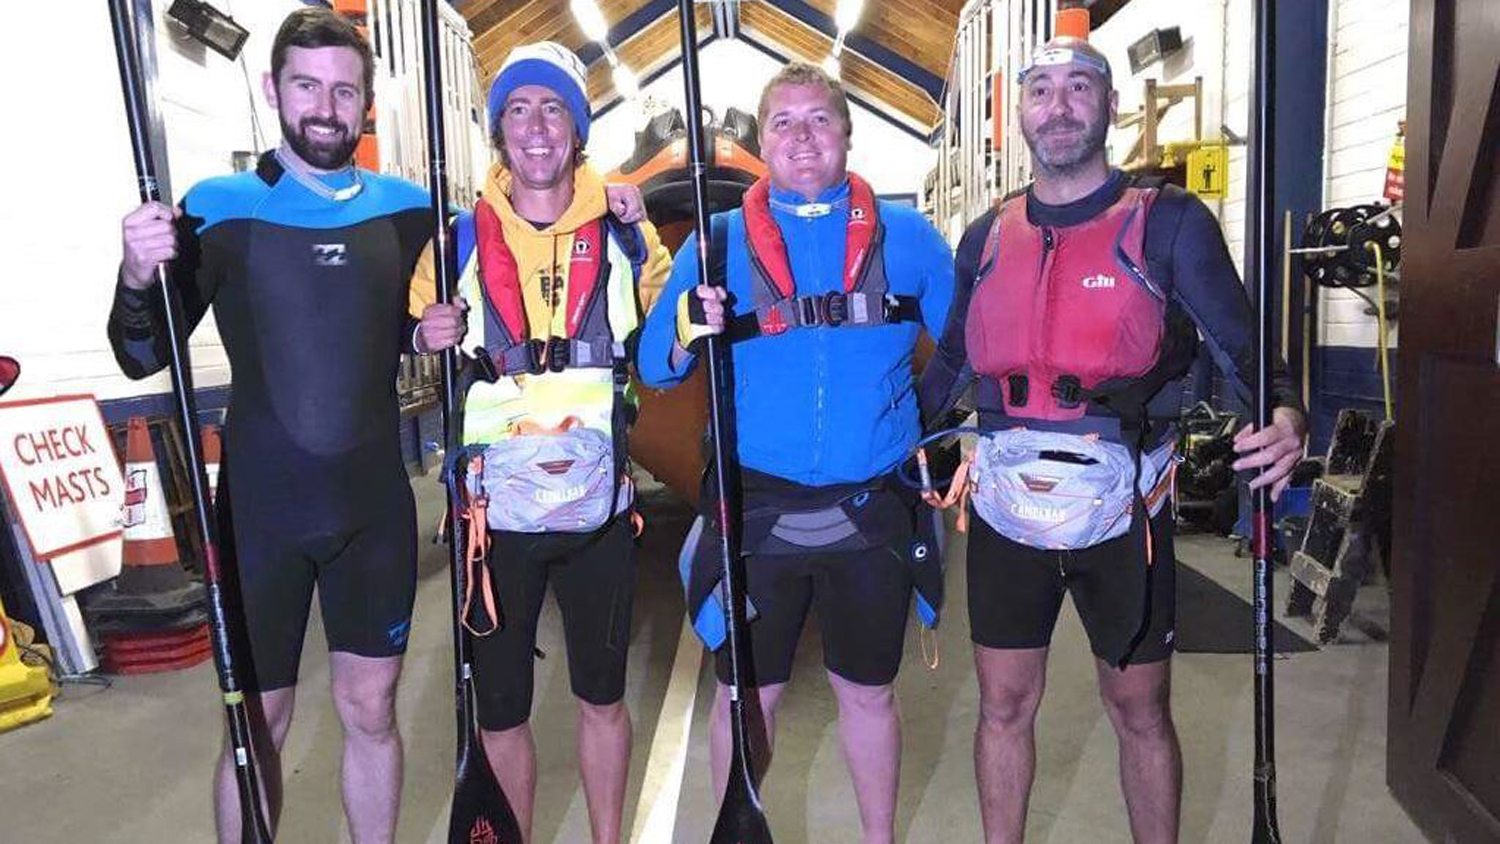 Stephen Sherwin with standing with his three SUP challenge friends in a lifeboat station